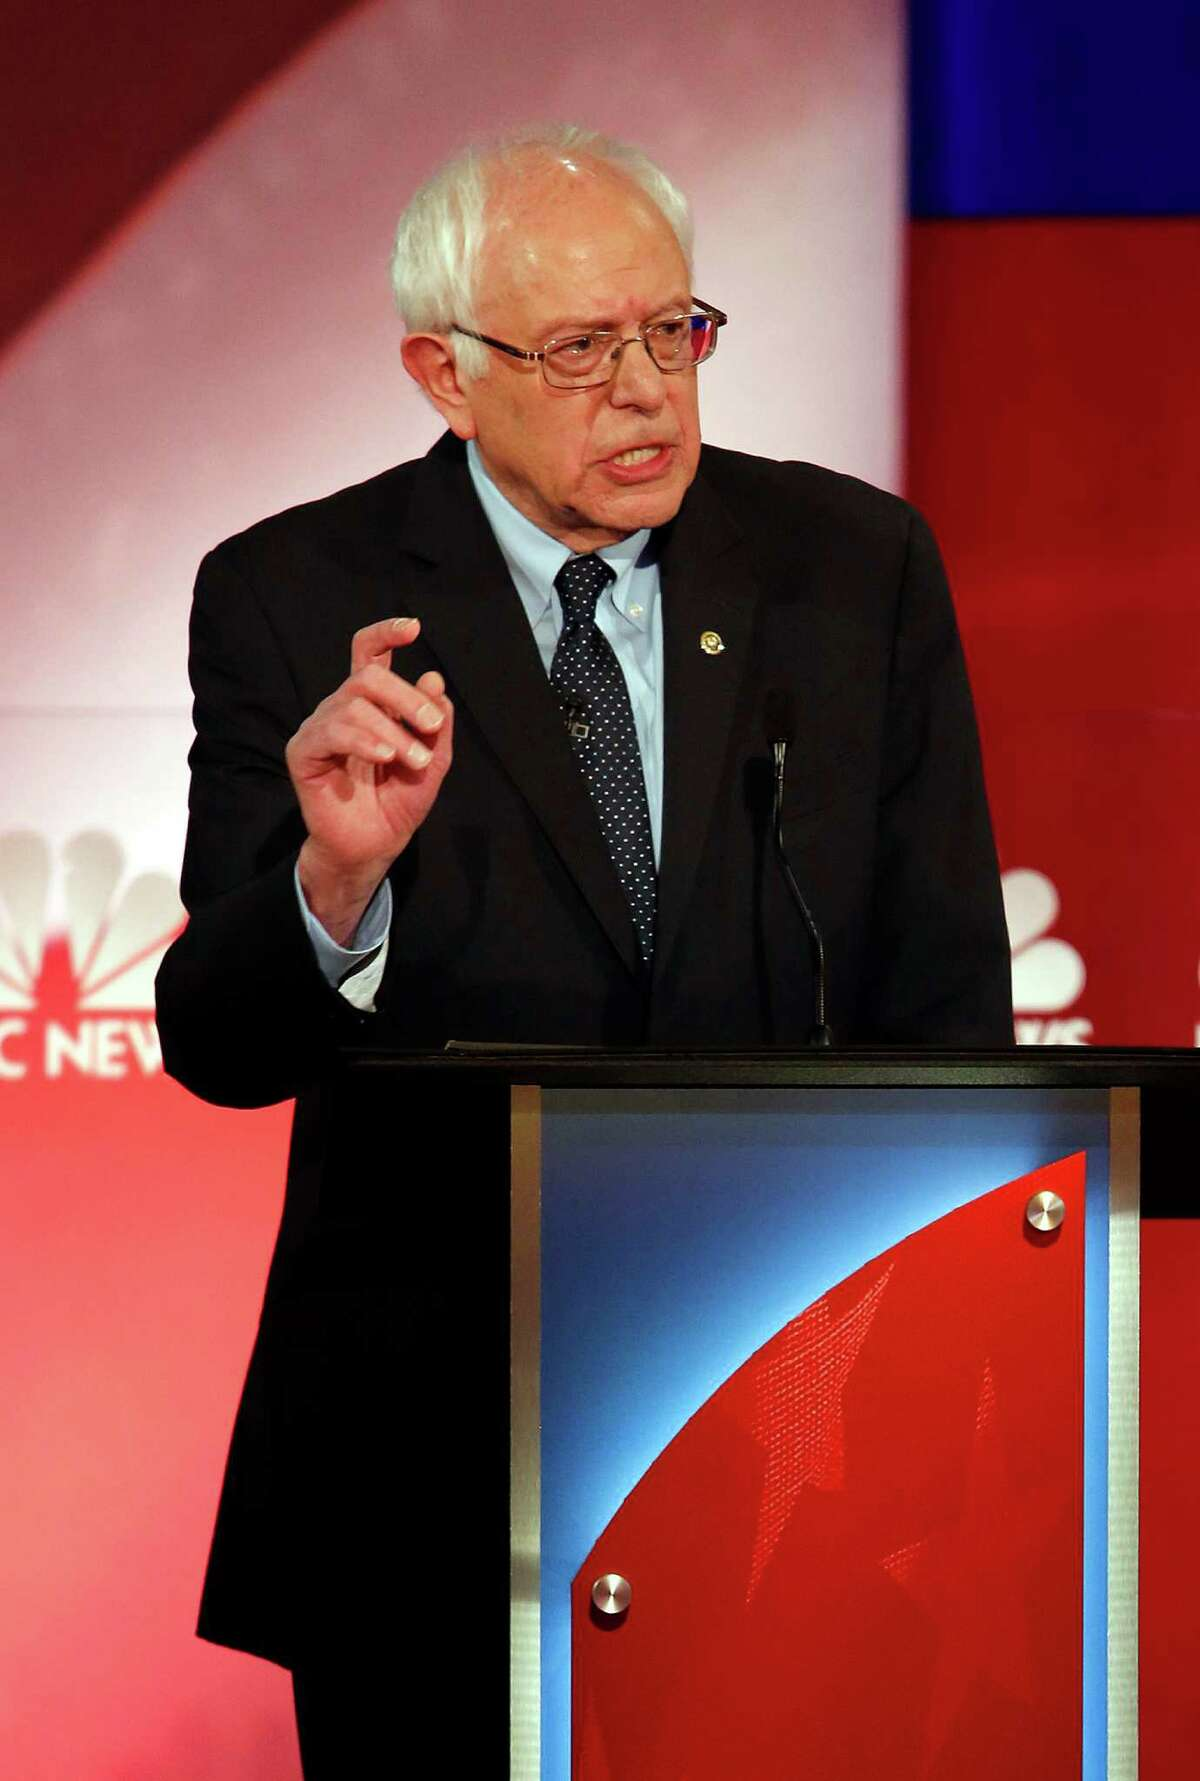 Democratic presidential candidate, Sen. Bernie Sanders, I-V.T., speaks at the NBC, YouTube Democratic presidential debate at the Gaillard Center, Sunday, Jan. 17, 2016, in Charleston, S.C. (AP Photo/Mic Smith) ORG XMIT: SCML118